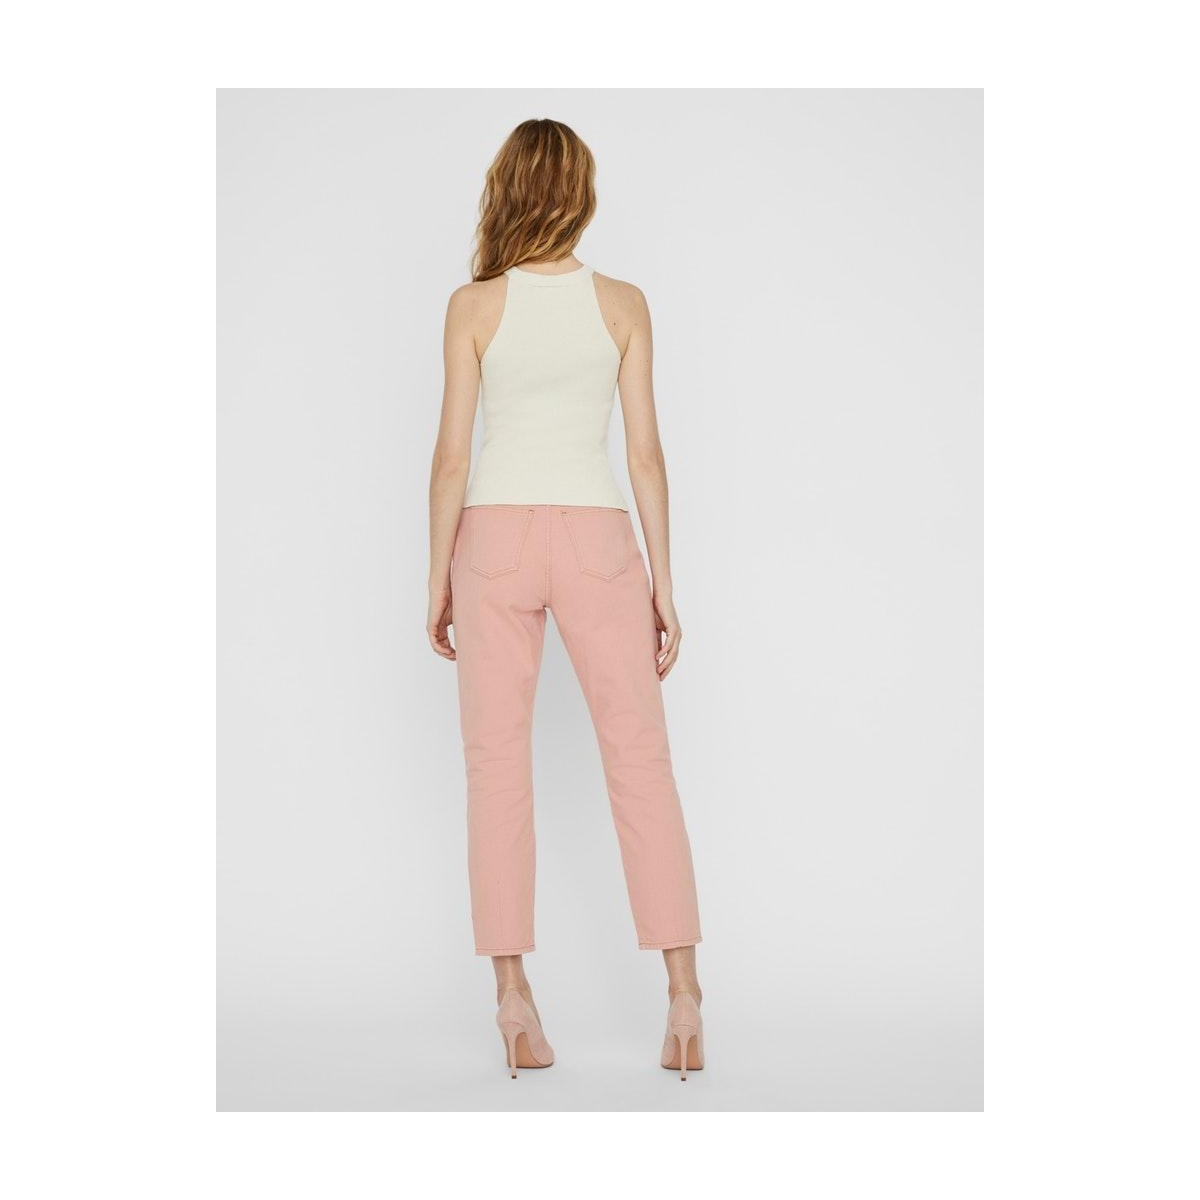 nmbass s/l cropped knit top 27001535 noisy may top sugar swizzle